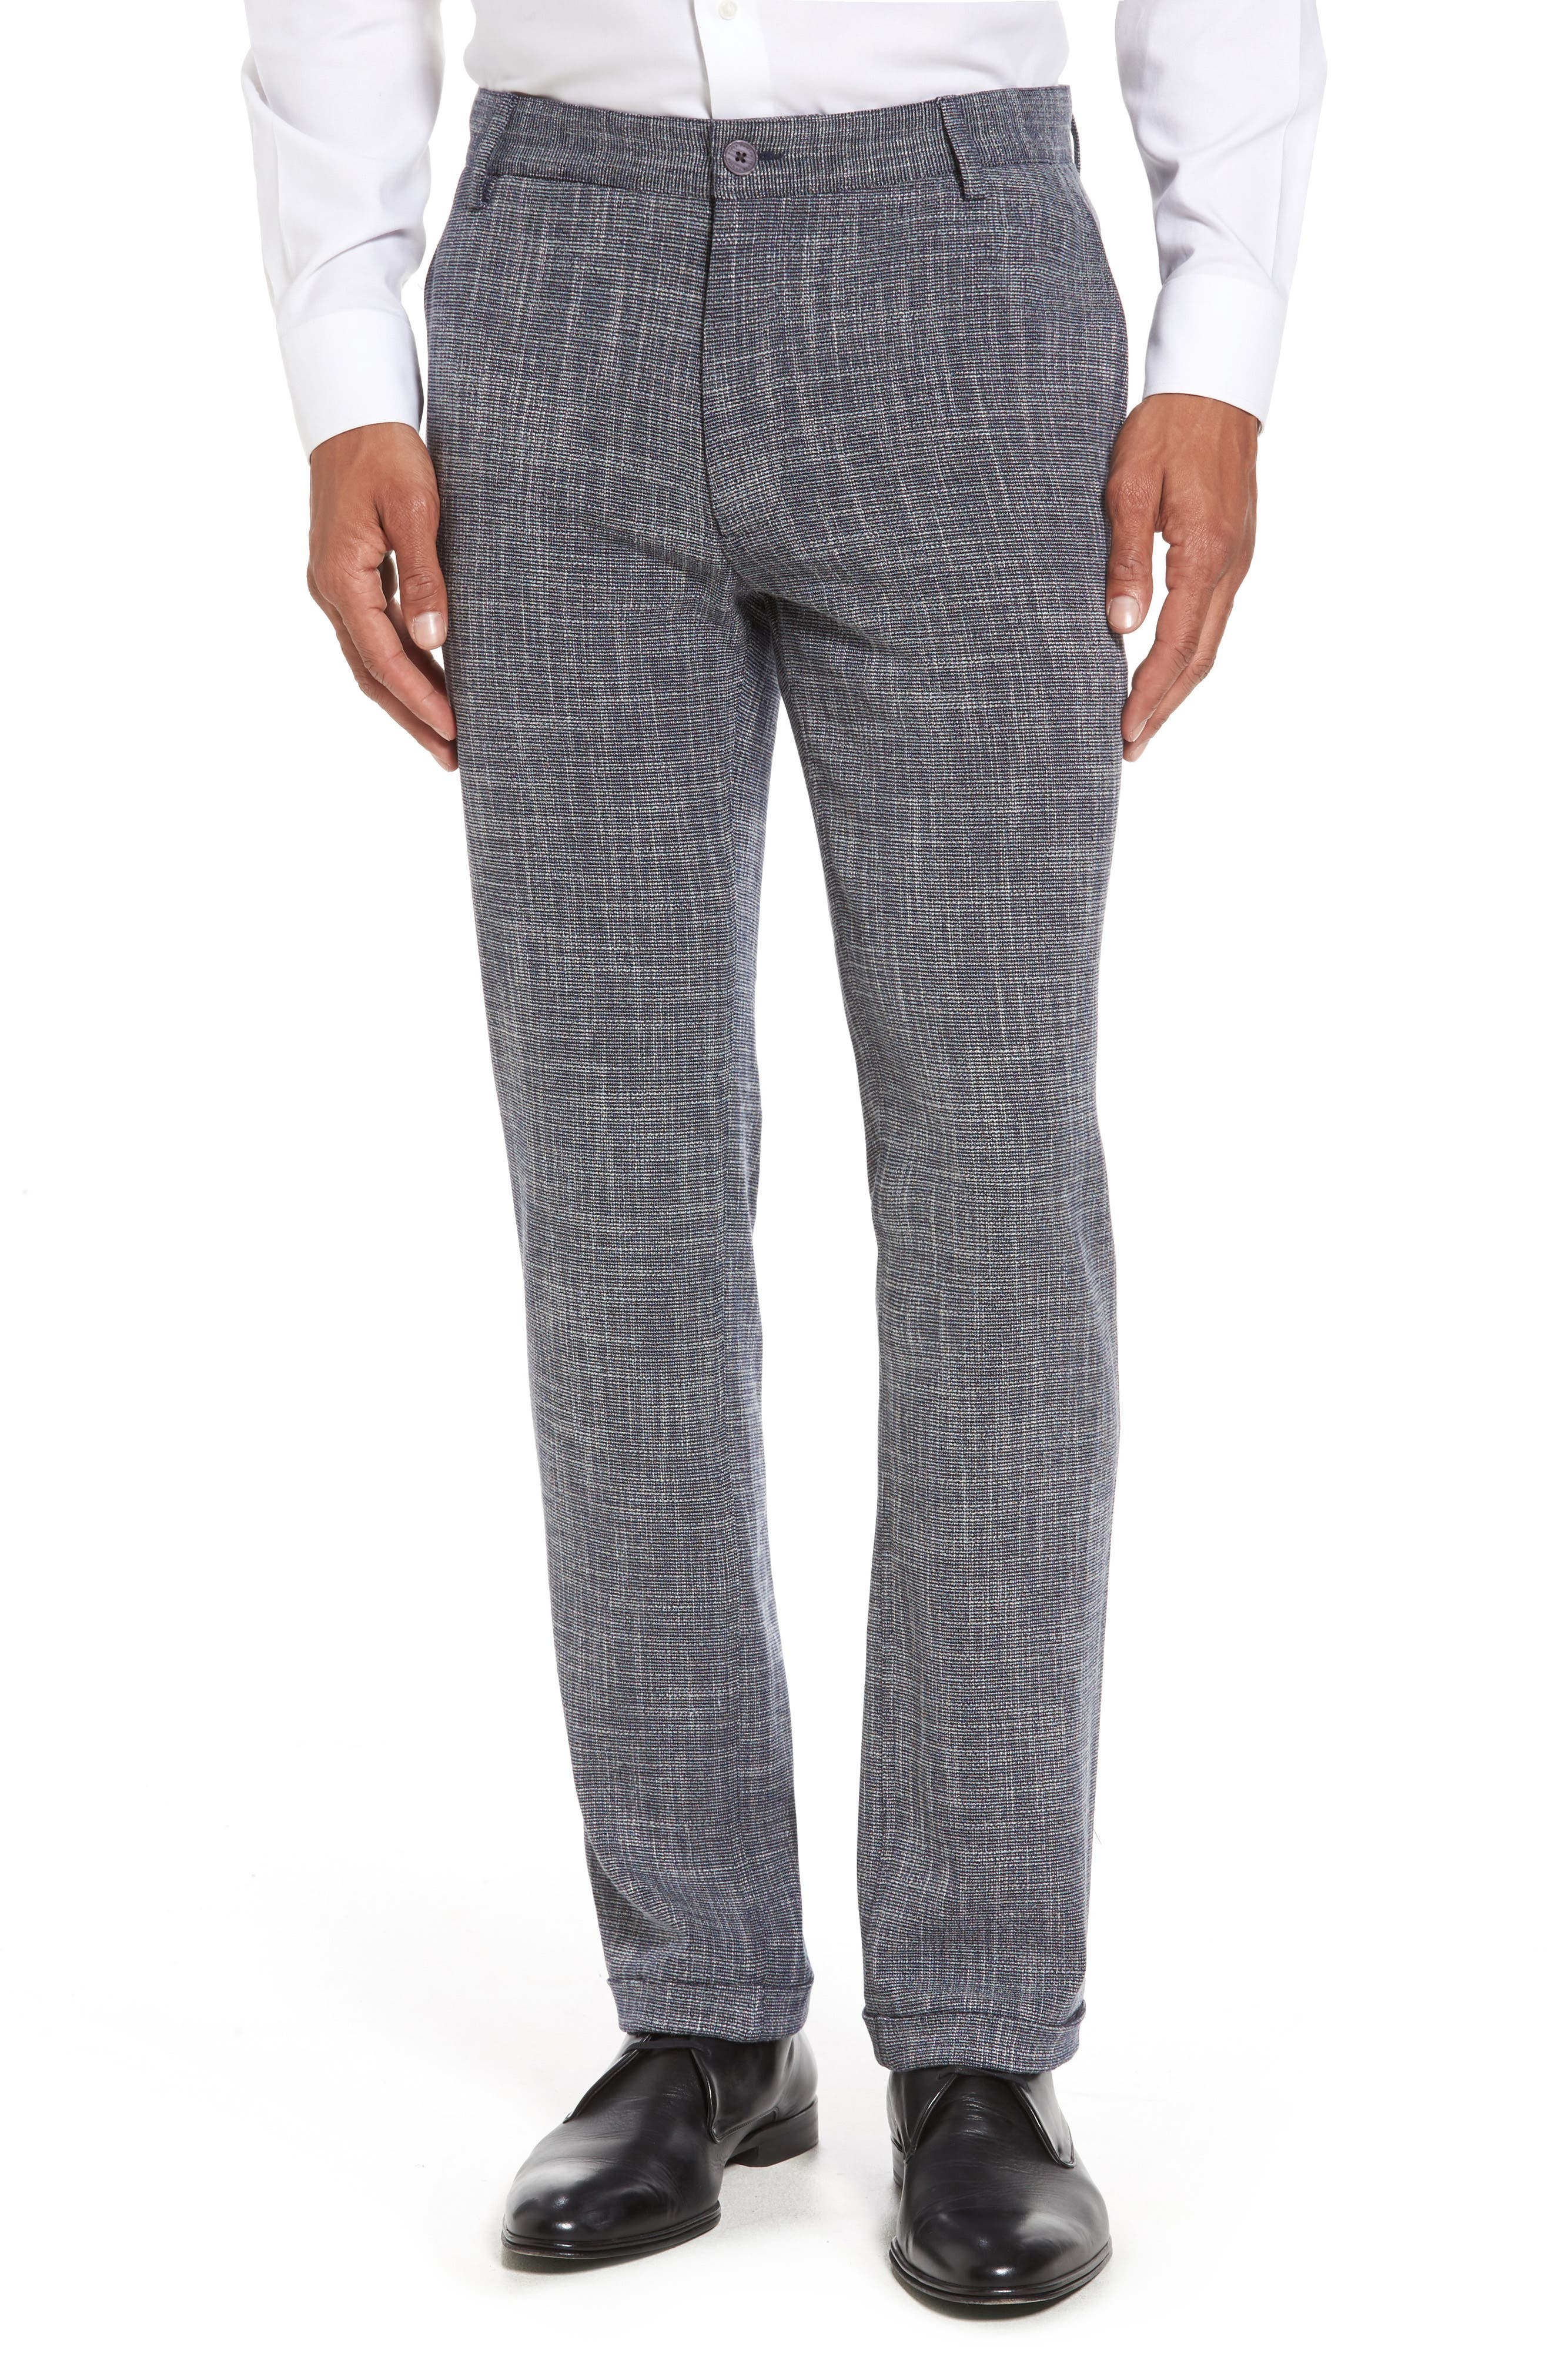 Vince Camuto Slim Fit Cuffed Pants